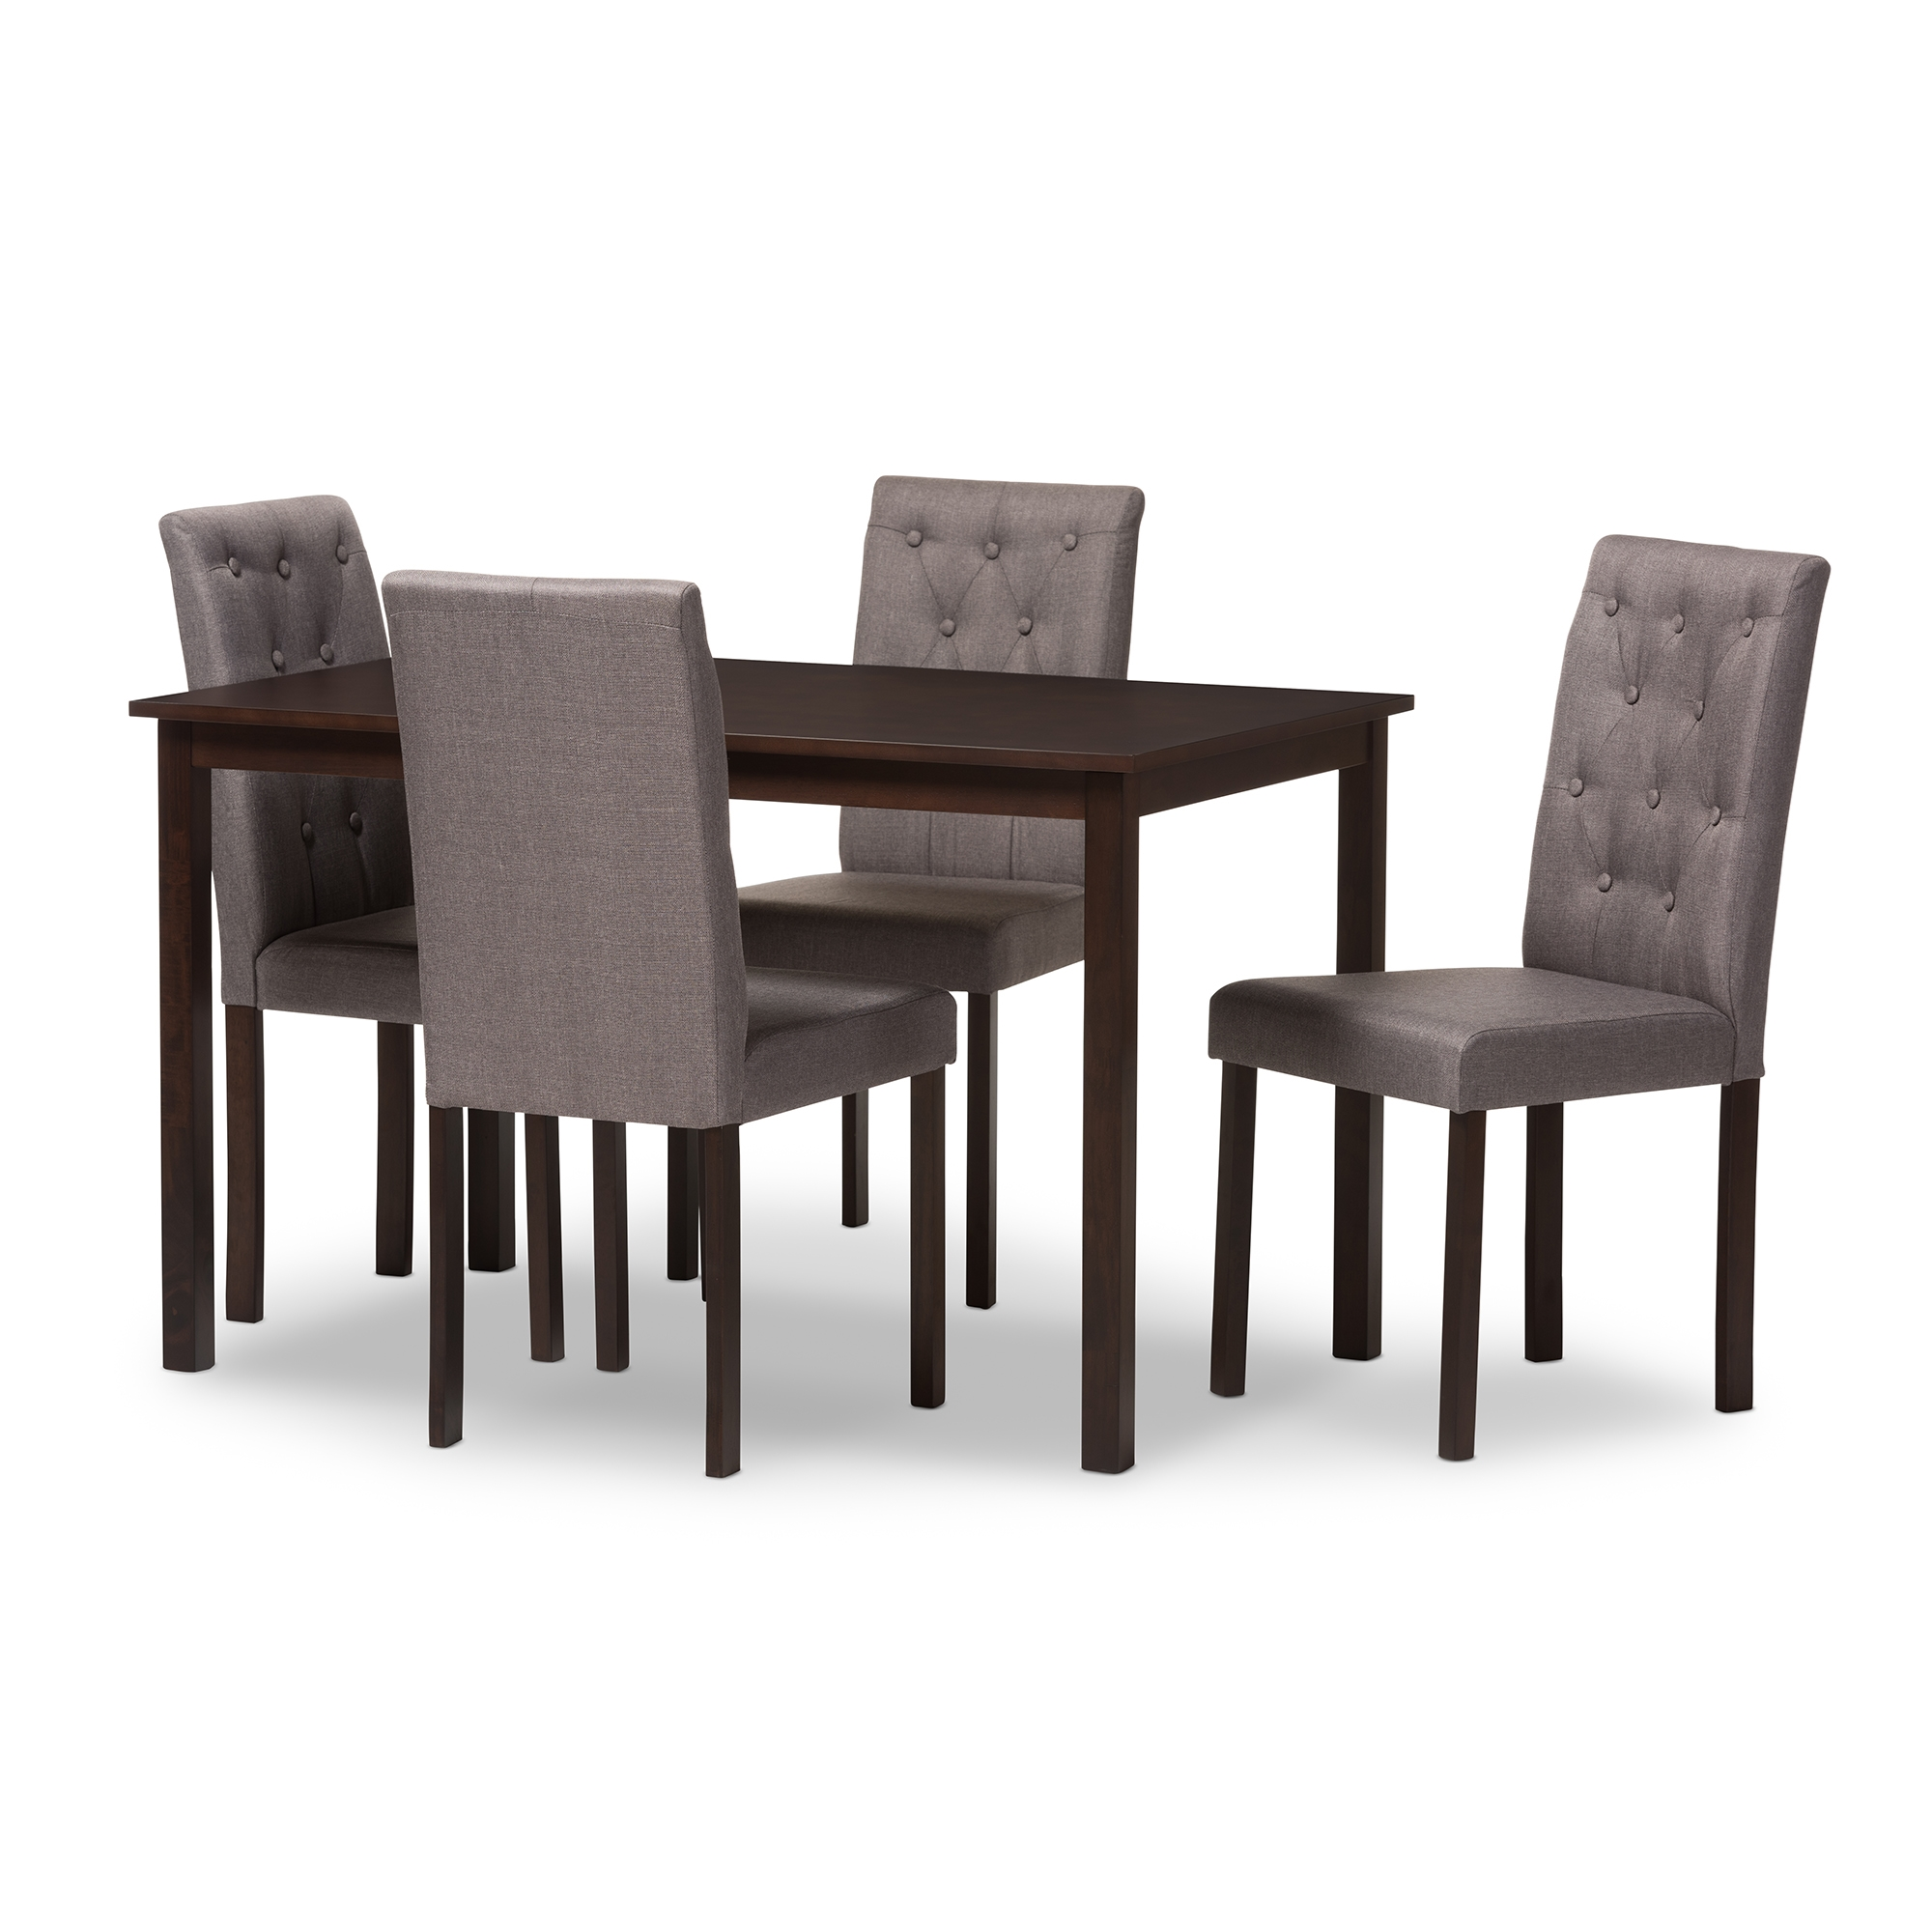 Baxton Studio Gardner Modern and Contemporary 5 Piece Dark  : Andrew 5 PC Dining Set 10 Buttons Grey Fabric 1 from www.baxtonstudiooutlet.com size 1000 x 1000 jpeg 225kB